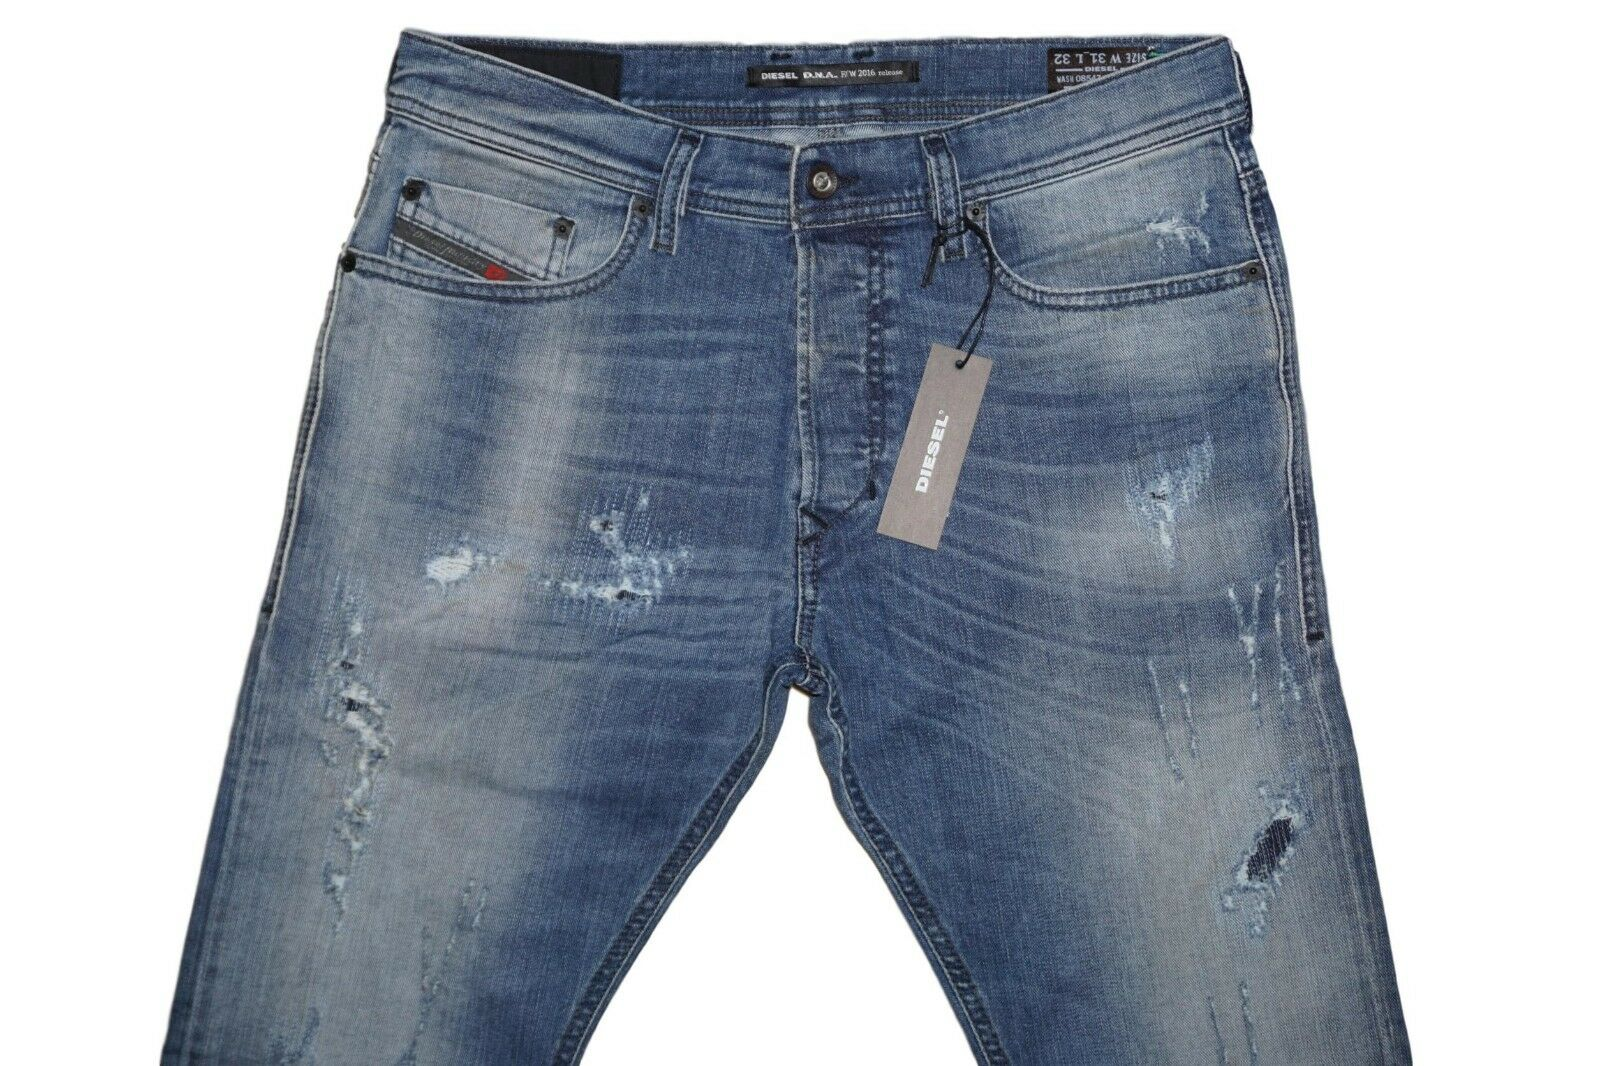 DIESEL TEPPHAR 0854Z SLIM CARred JEANS W34 L32 100% AUTHENTIC